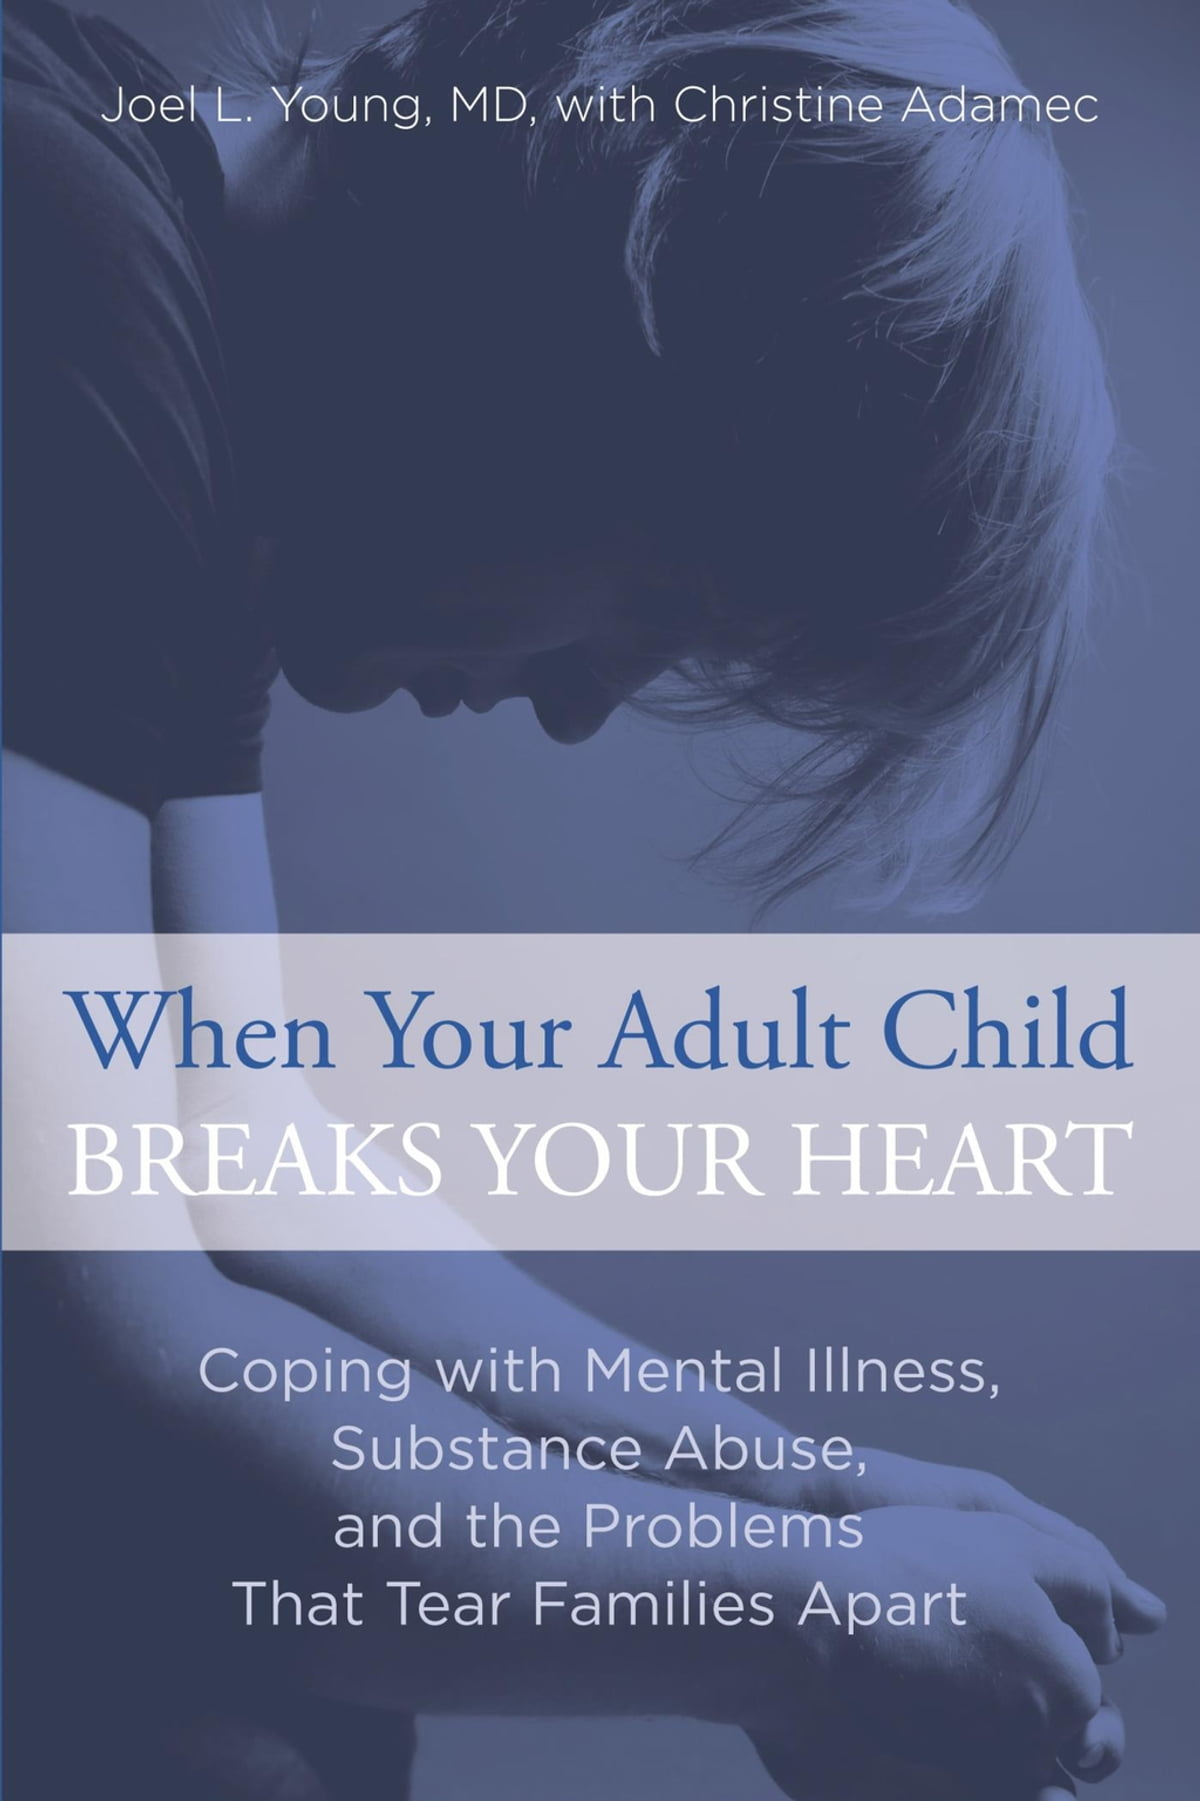 When Your Adult Child Breaks Your Heart eBook by Joel Young - 9781493003969  | Rakuten Kobo